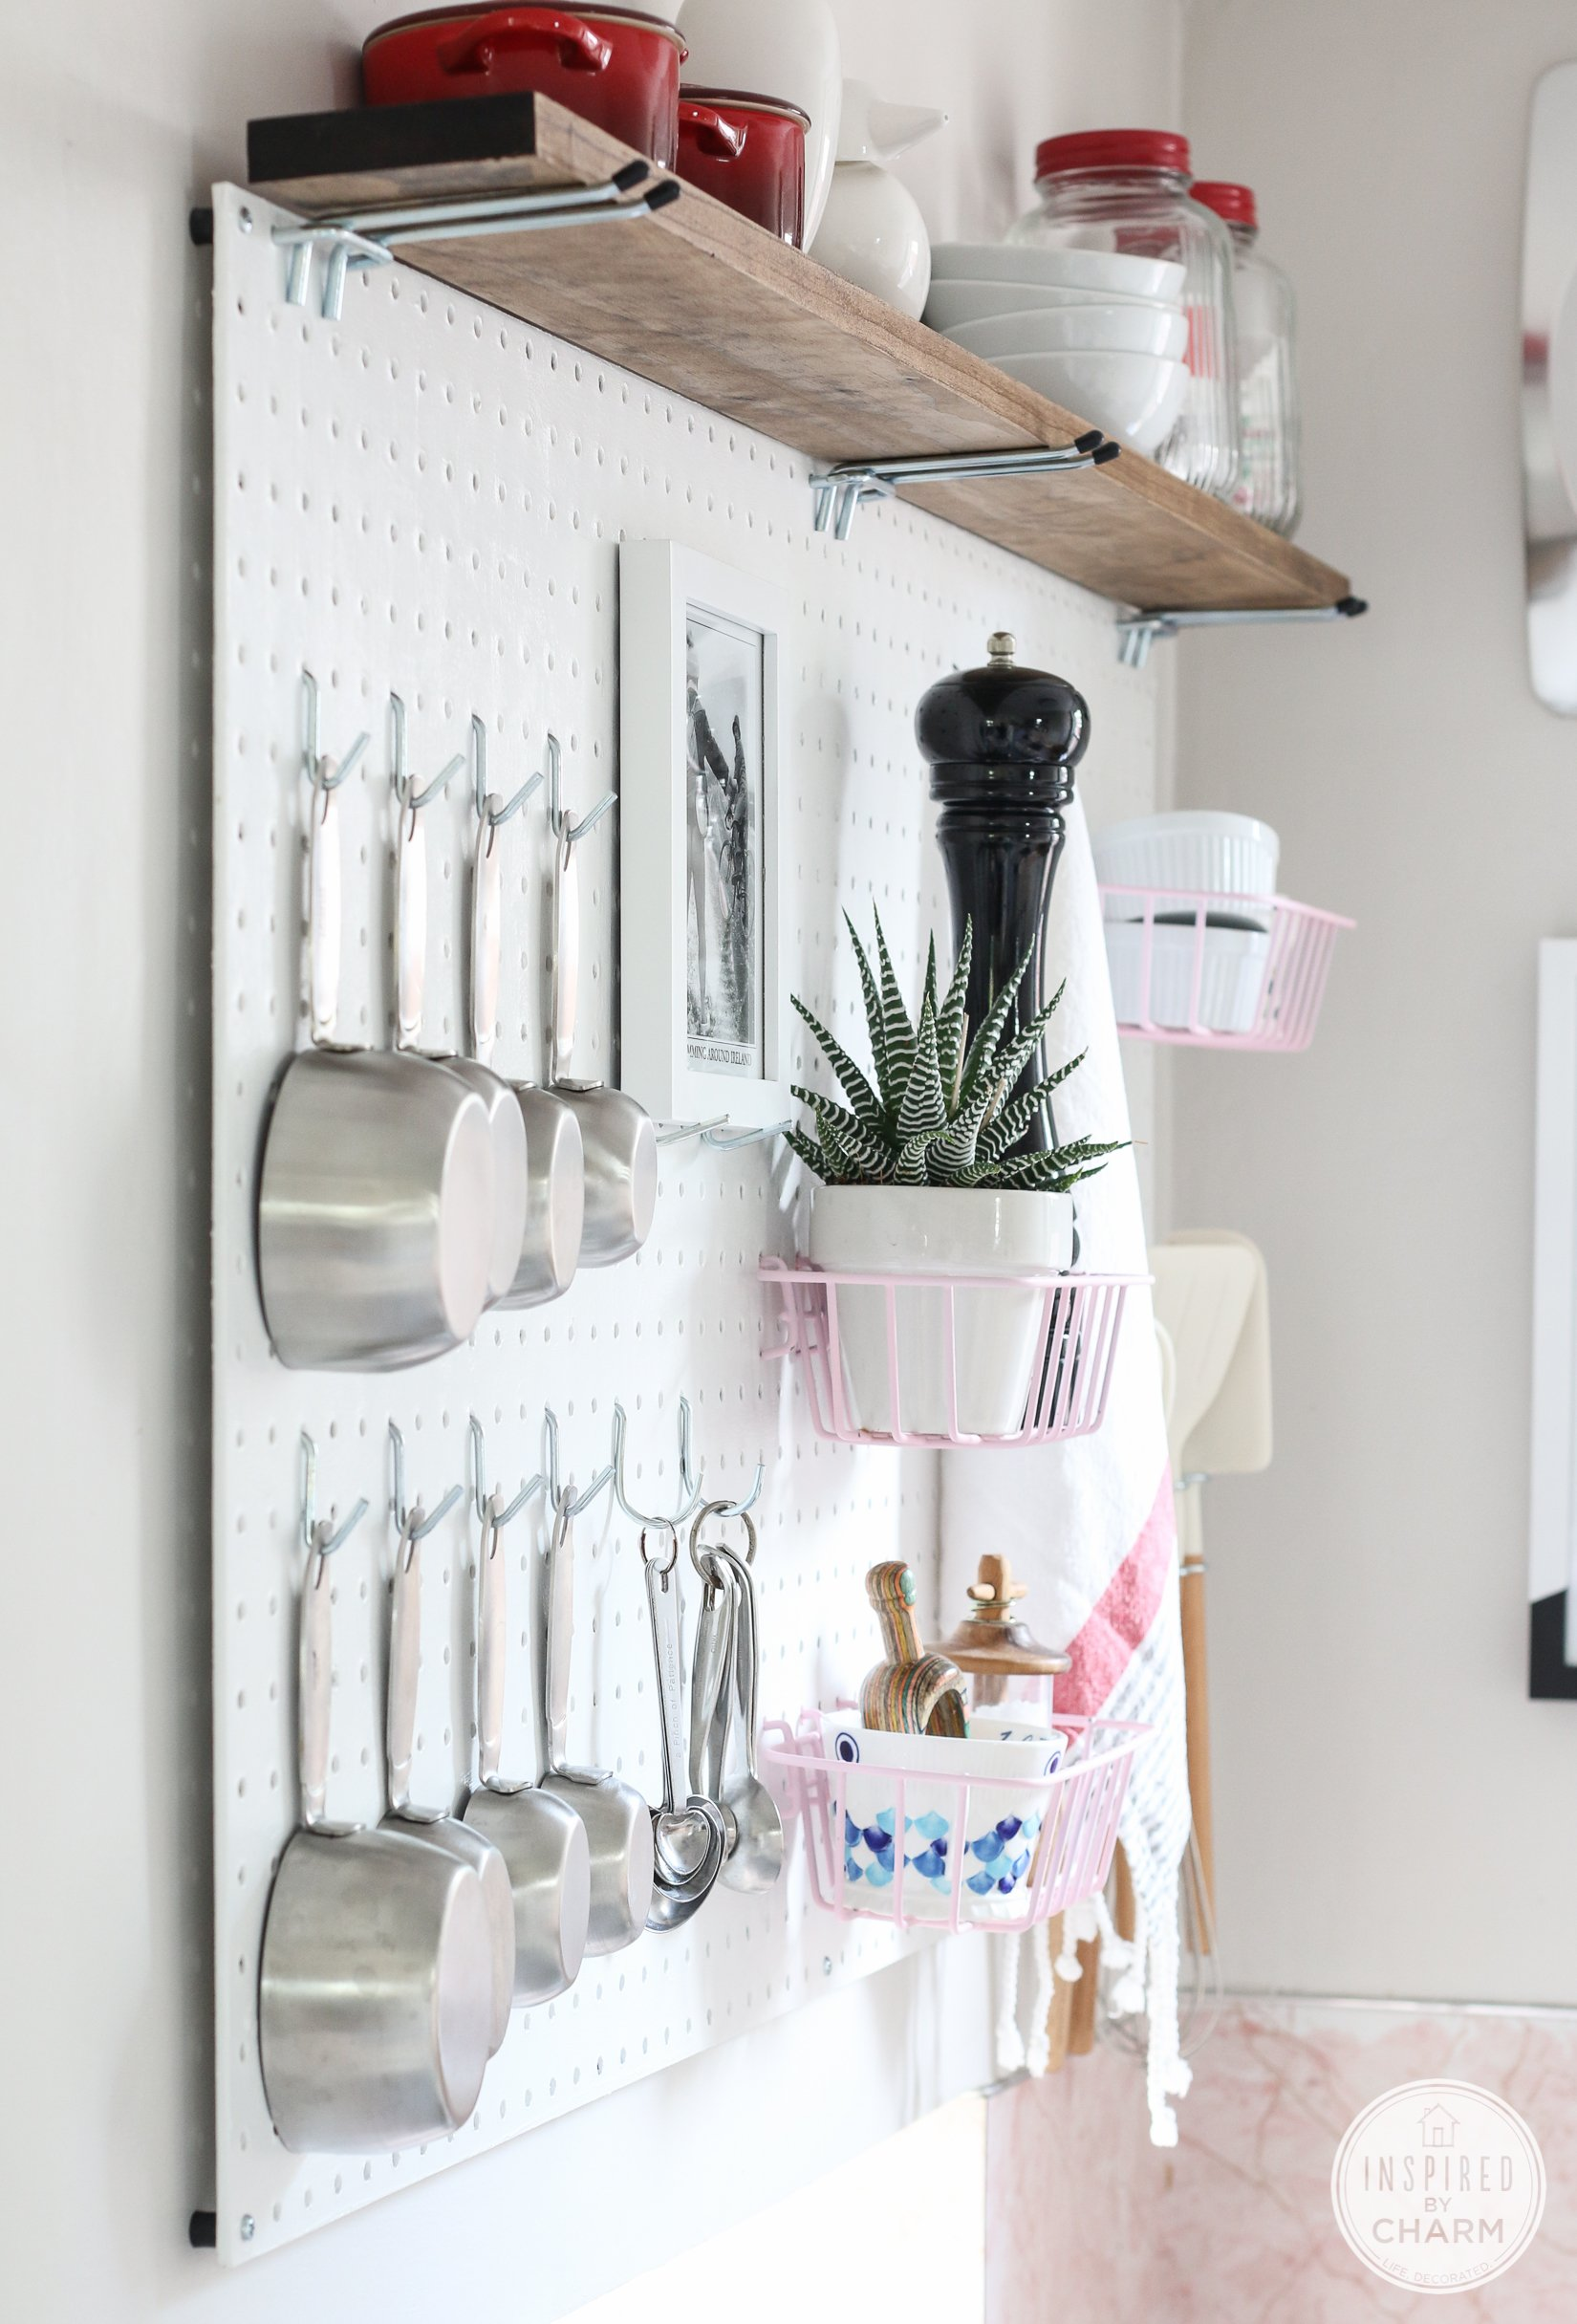 Storage For The Kitchen Pegboard Kitchen Storage Inspired By Charm